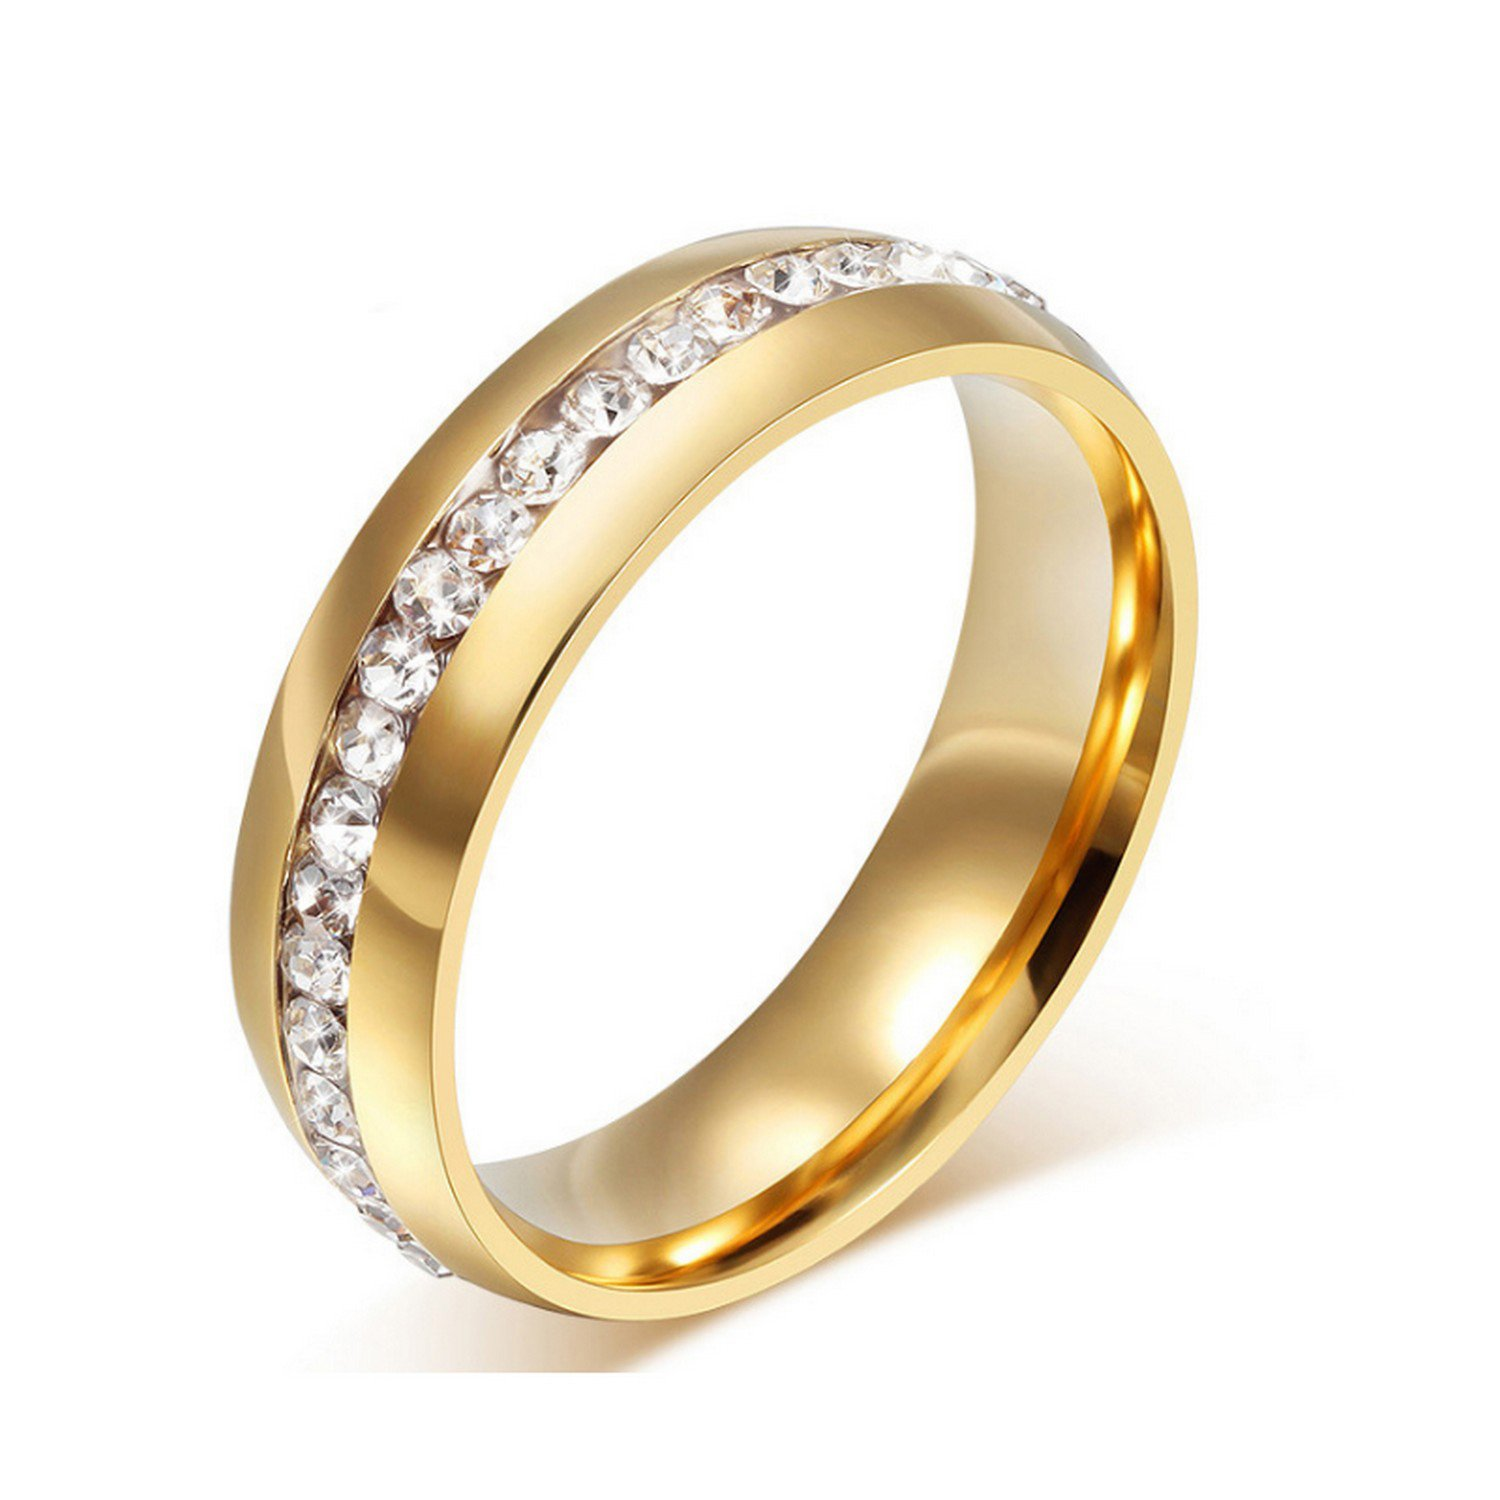 Gemmart 316 Stainless Steel Ring with Luxury cubic zirconia engagement rings ladies fashion rings